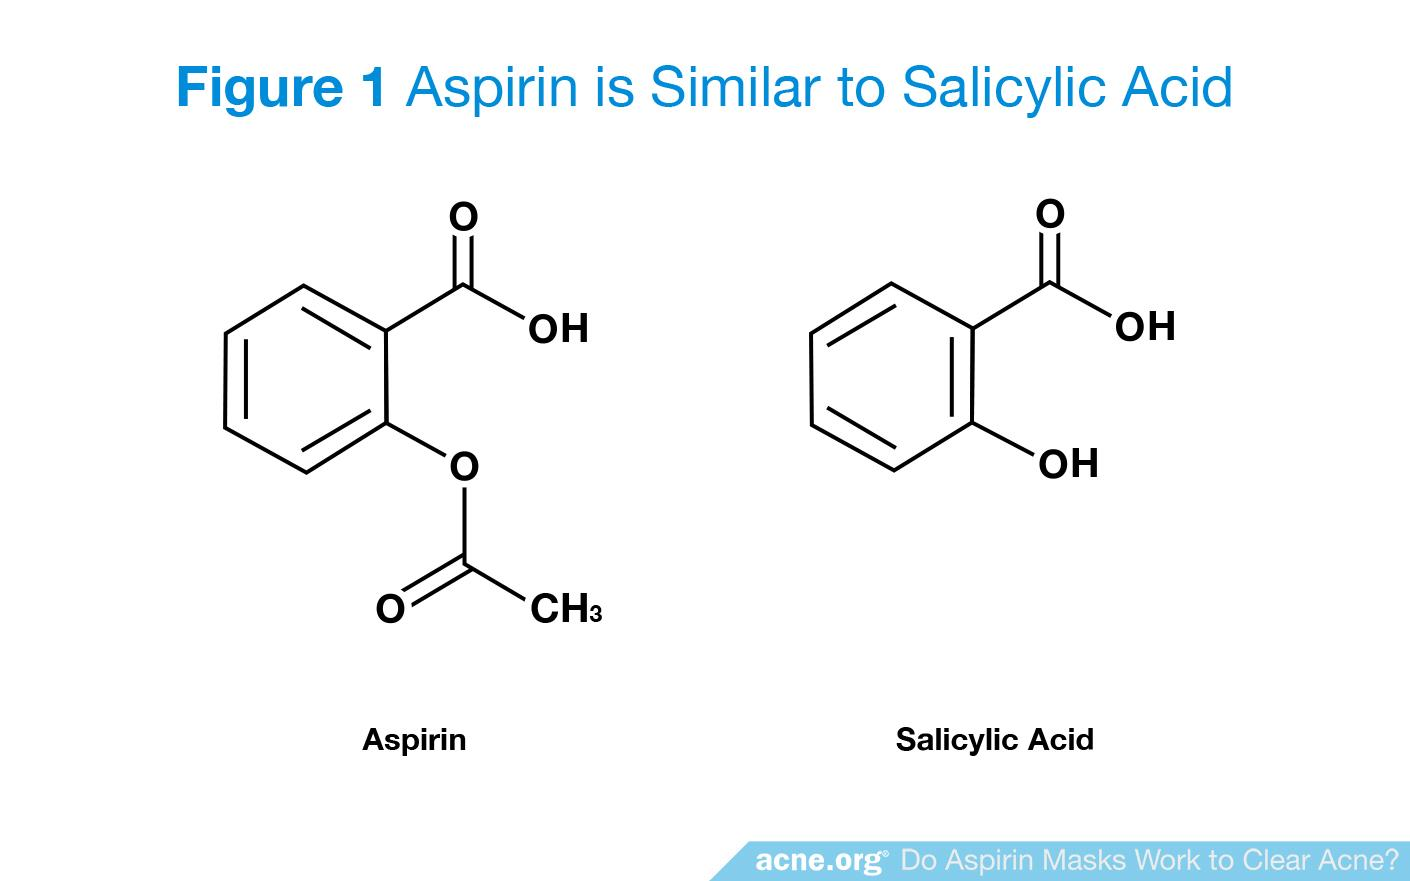 Aspirin is Similar to Salicylic Acid